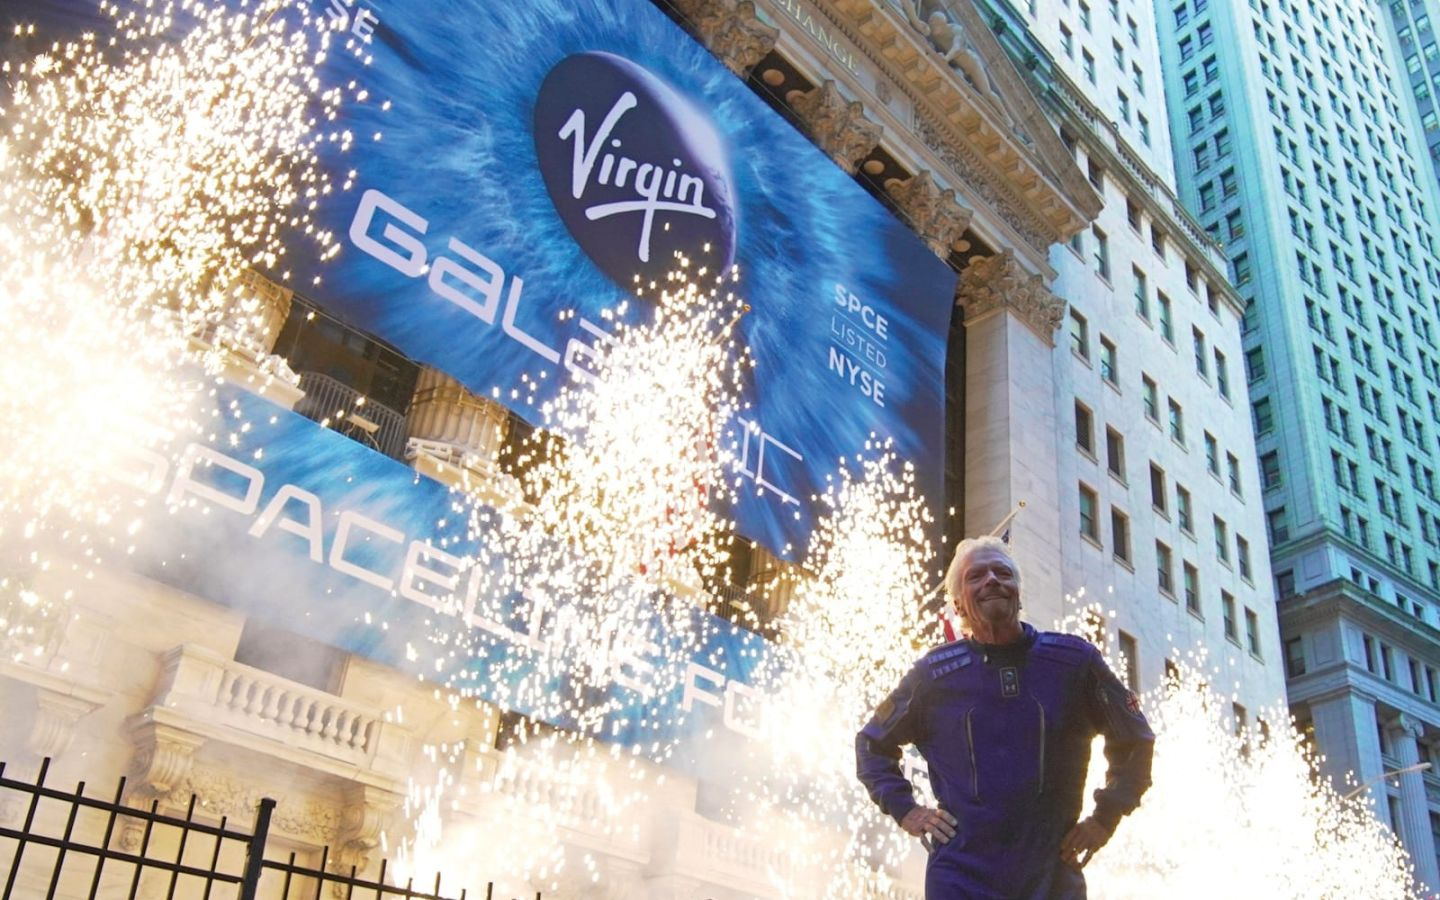 Richard Branson stands in front of pyrotechnics celebrating Virgin Galactic's debut on the New York Stock Exchange